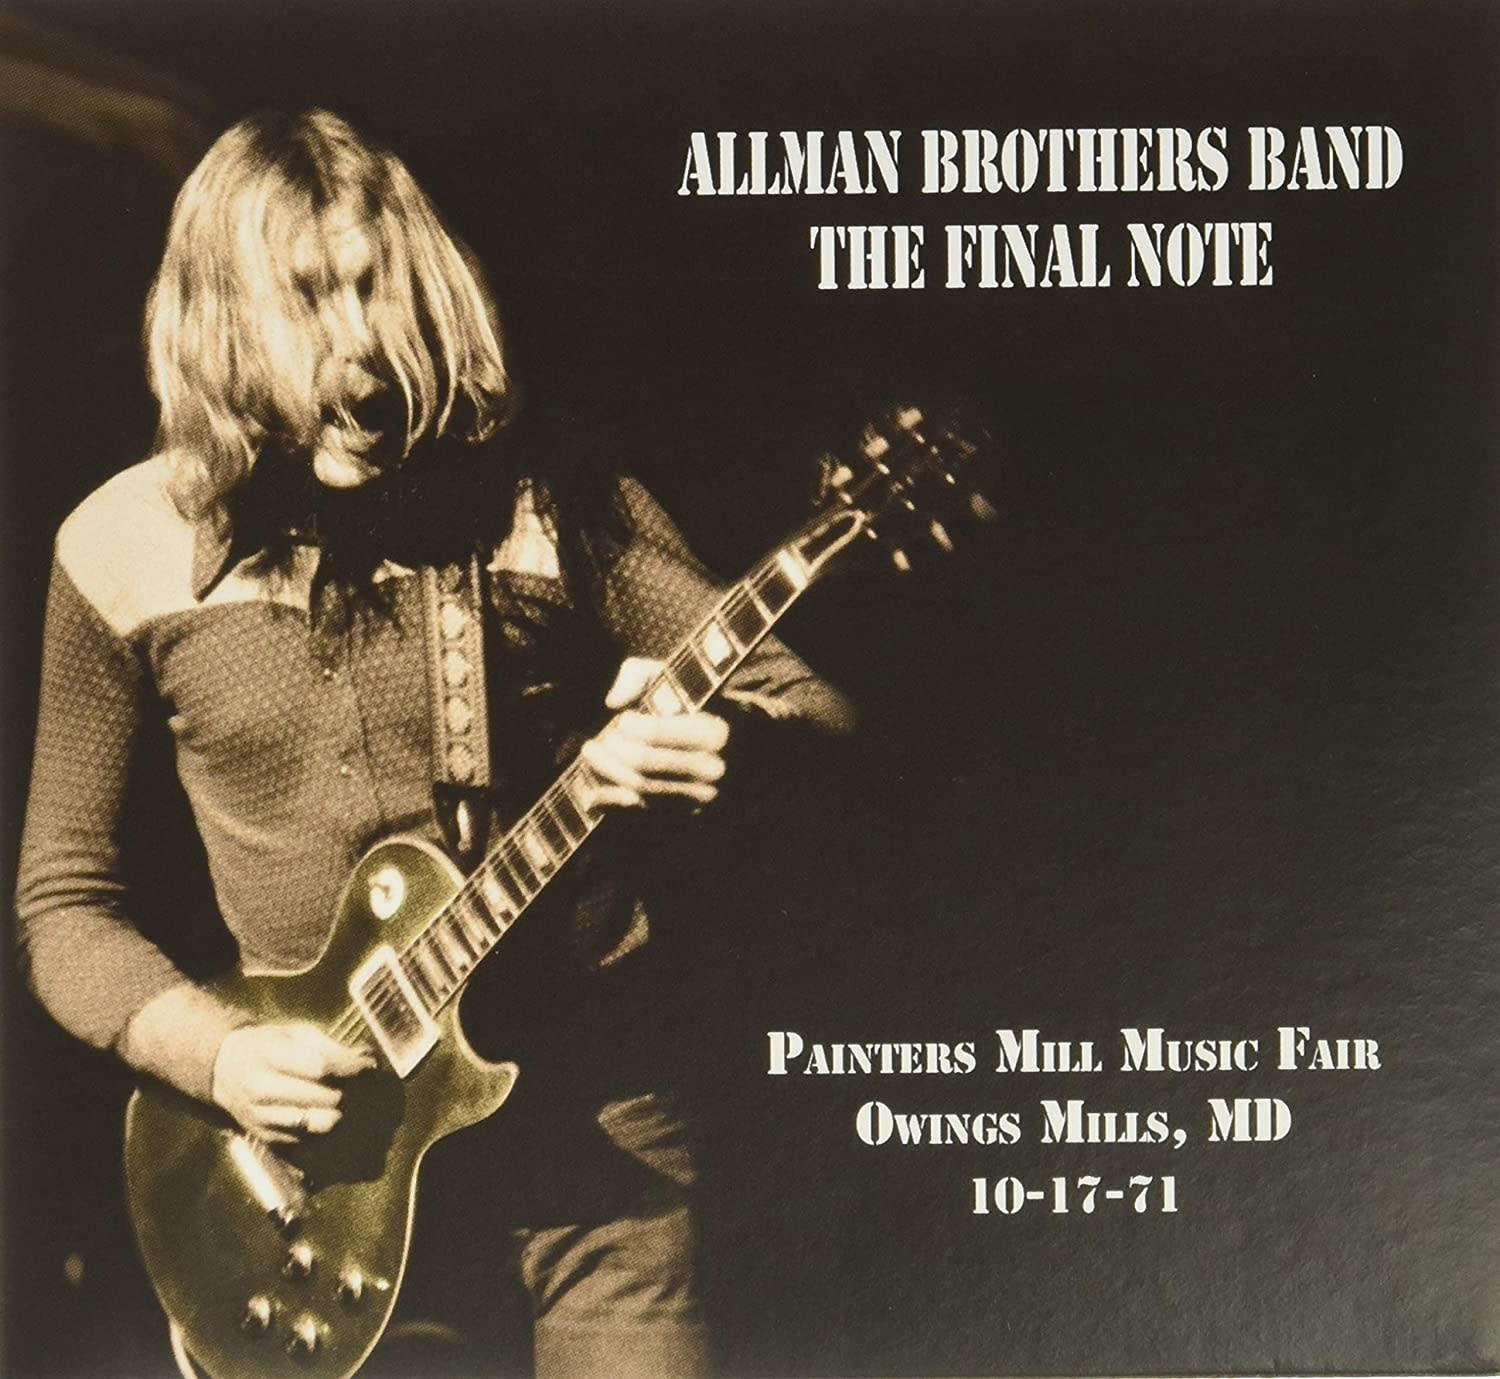 Rock/Pop Allman Brothers Band - The Final Note: Painters Mill Music Fair...10-17-71 (Coloured Vinyl)